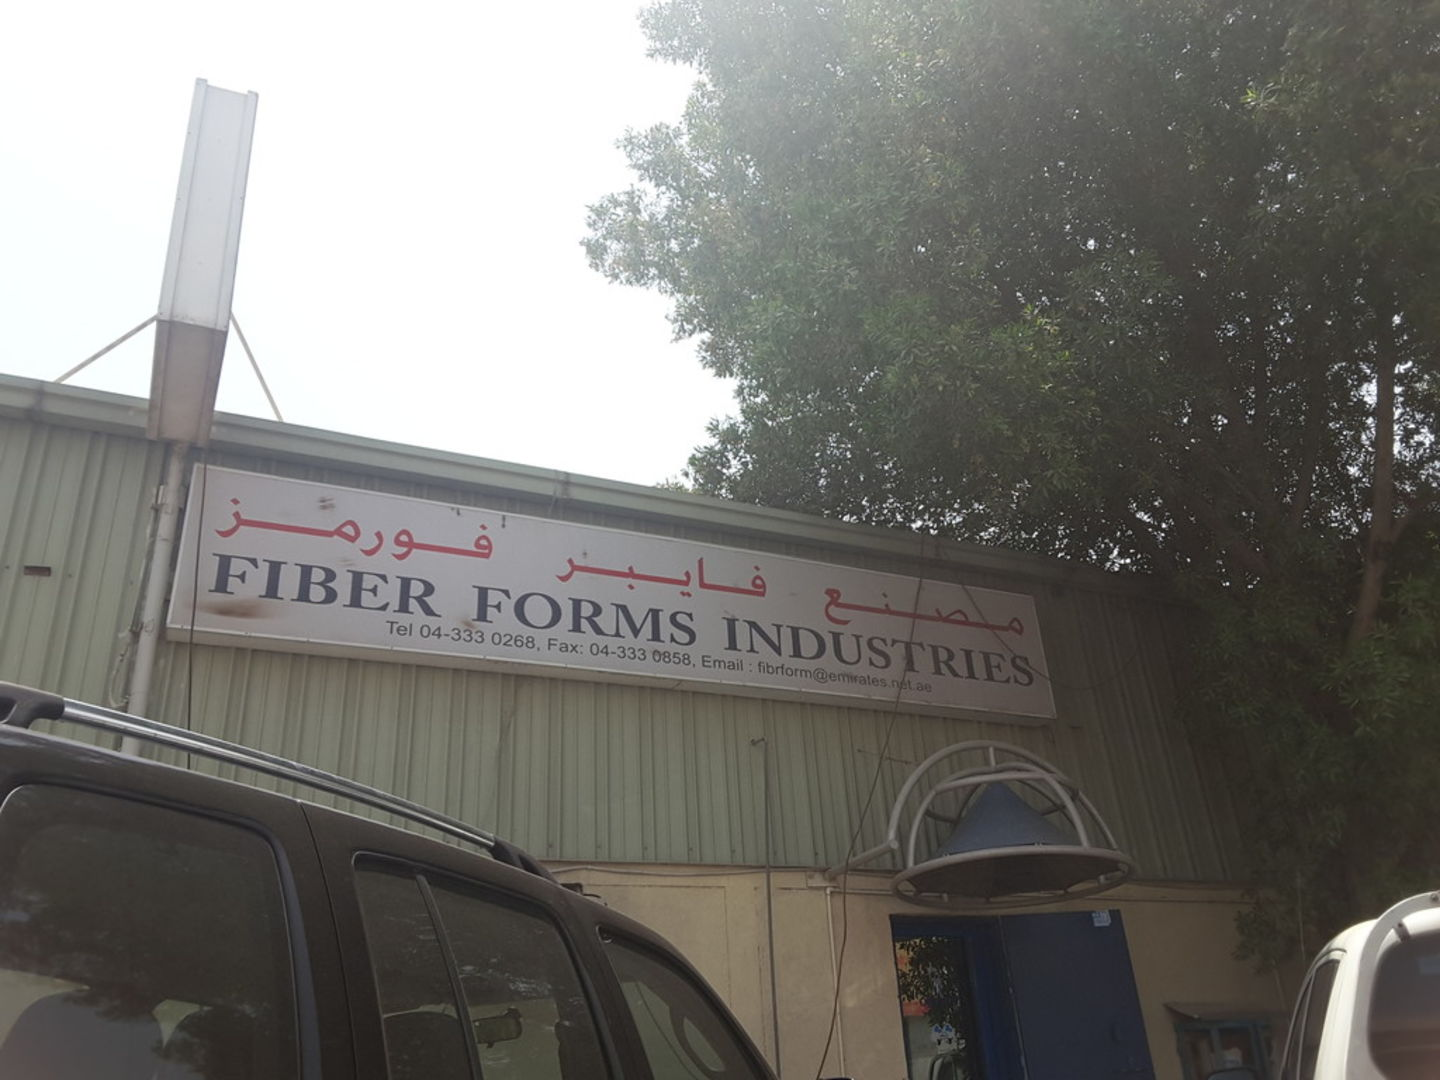 Walif-business-fiber-forms-industries